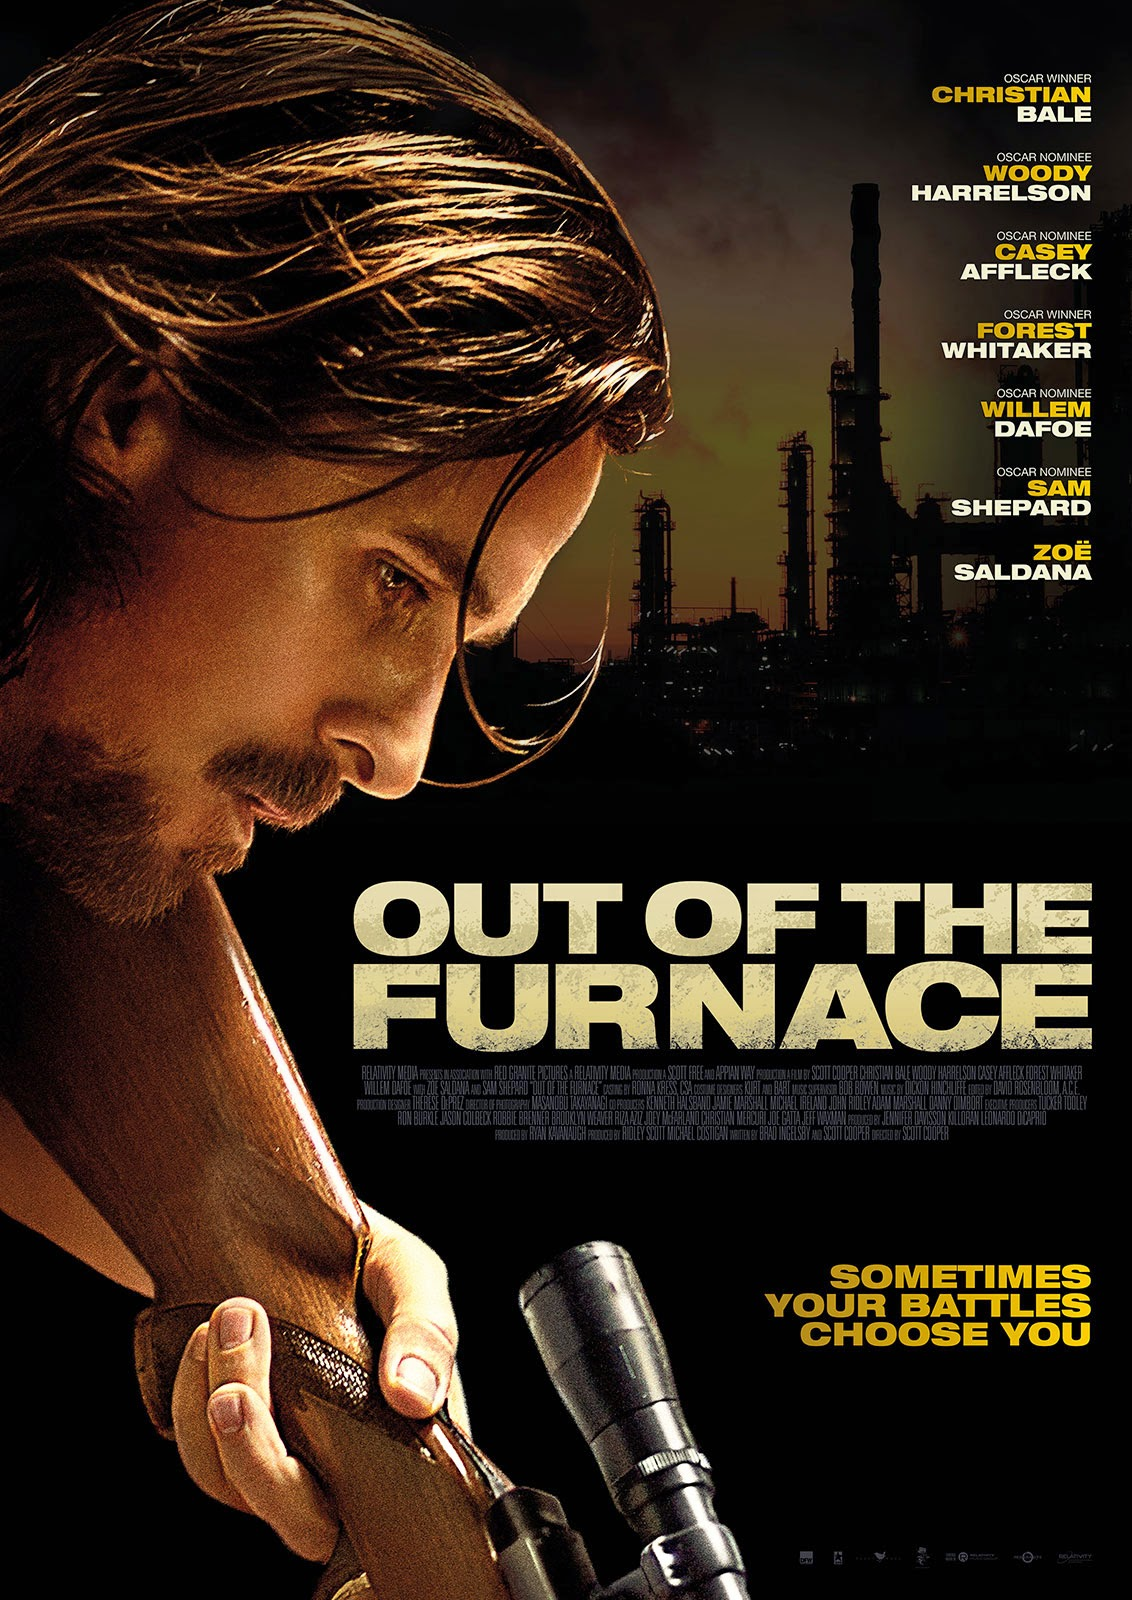 Out Of The Furnace (2013) 720p 1.1GB Blu-Ray Dual Audio [English DD 5.1 – Hindi DD 5.1] MKV